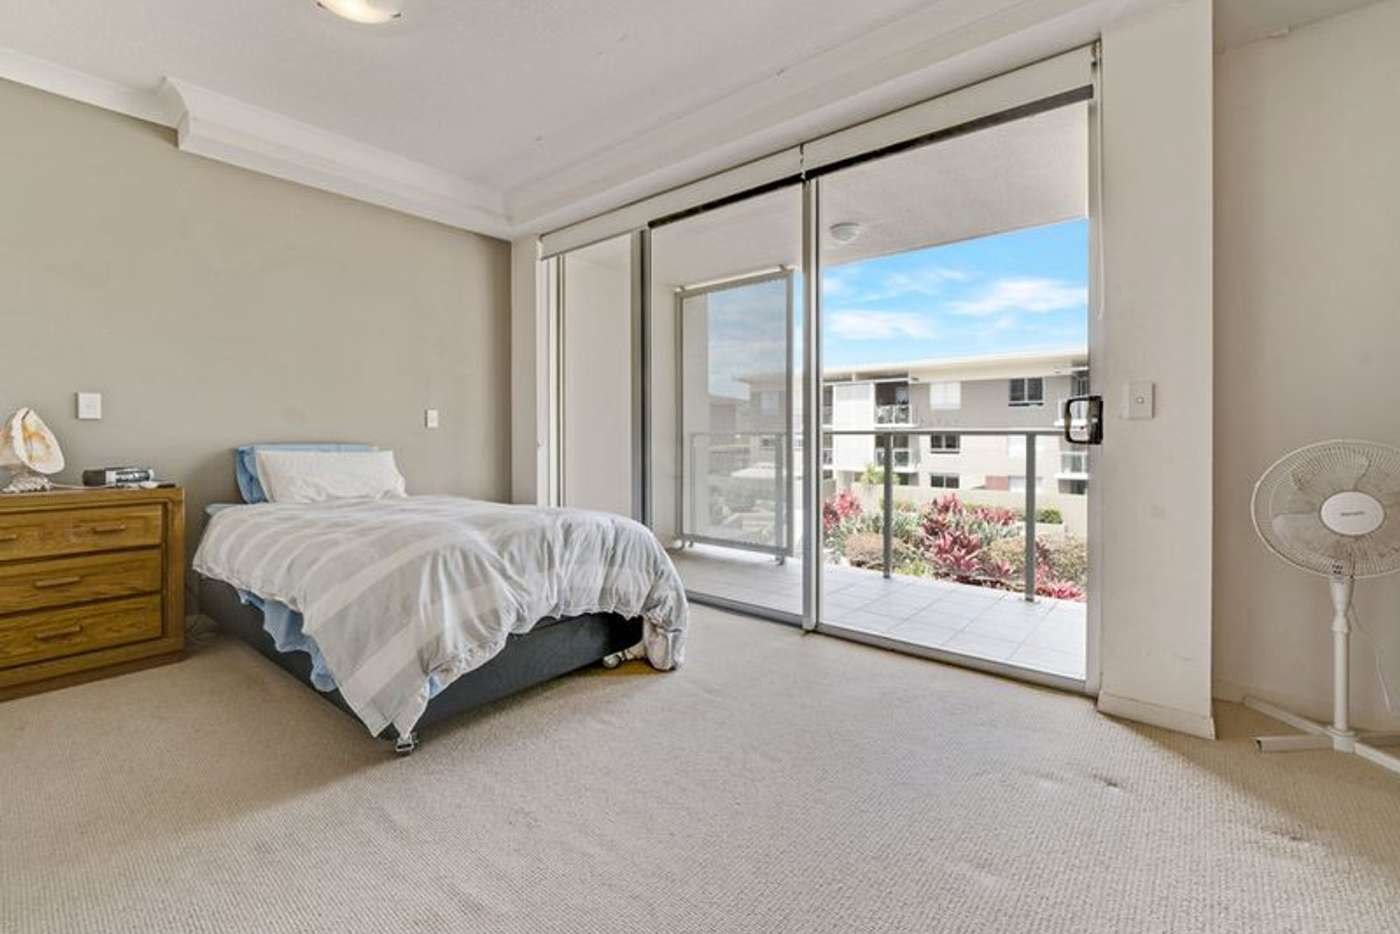 Fifth view of Homely apartment listing, 2306/12 Executive Drive, Burleigh Waters QLD 4220